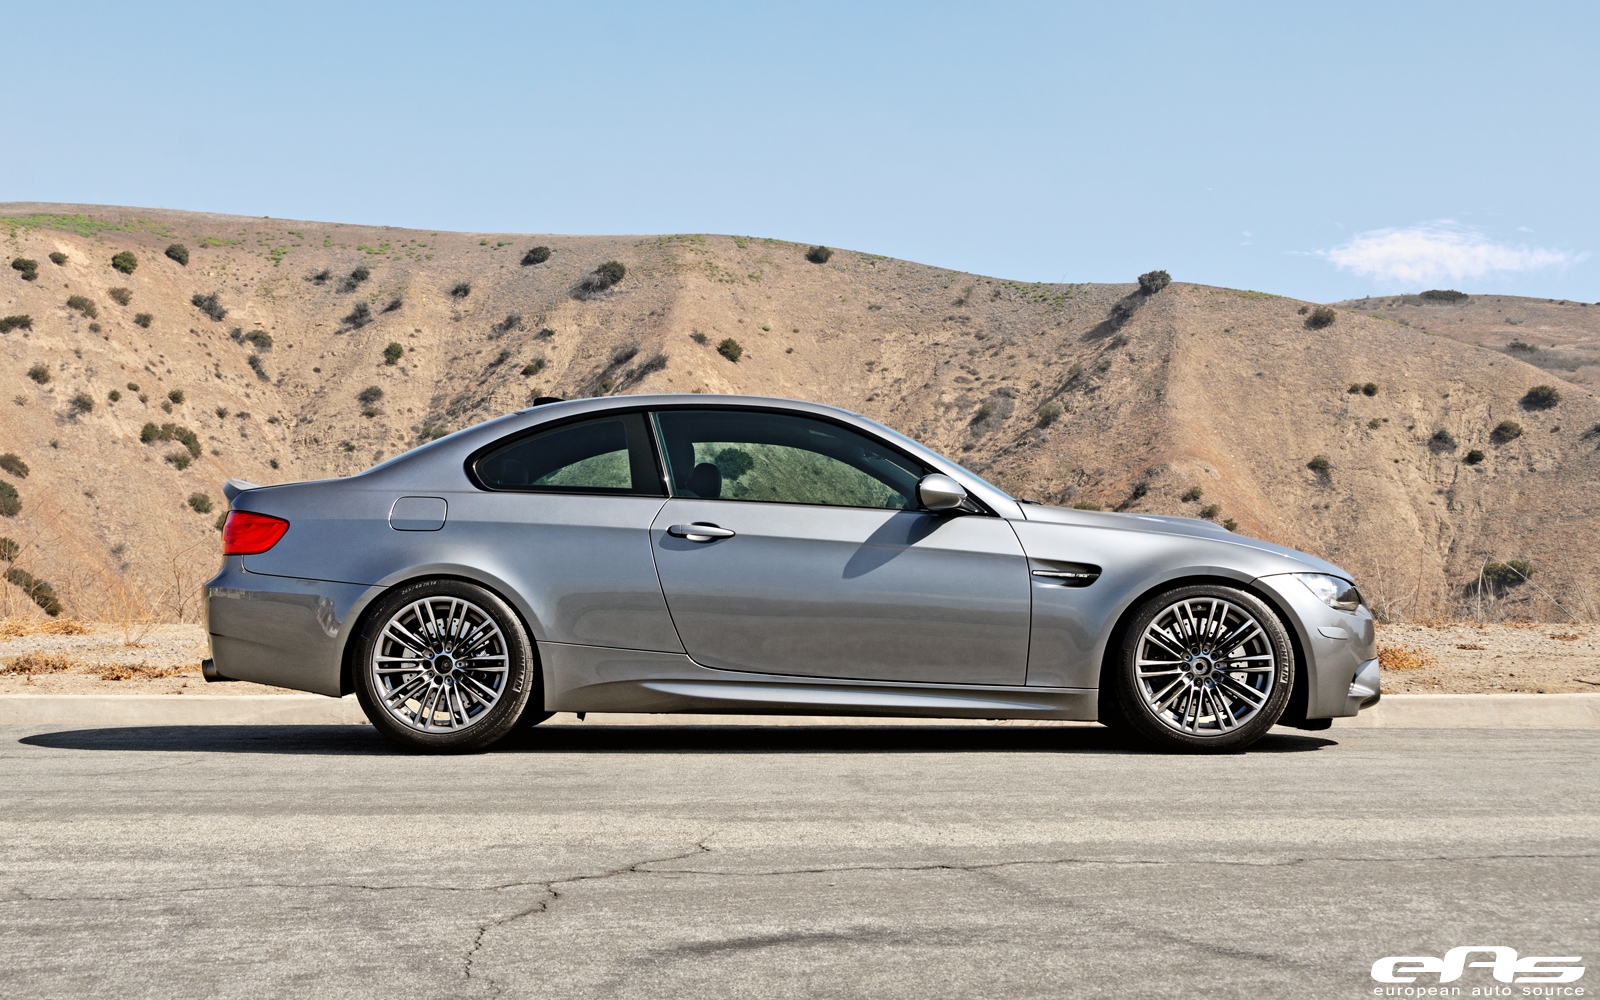 Space Gray Bmw E92 M3 Gets Vt2 625 Supercharger At Eas